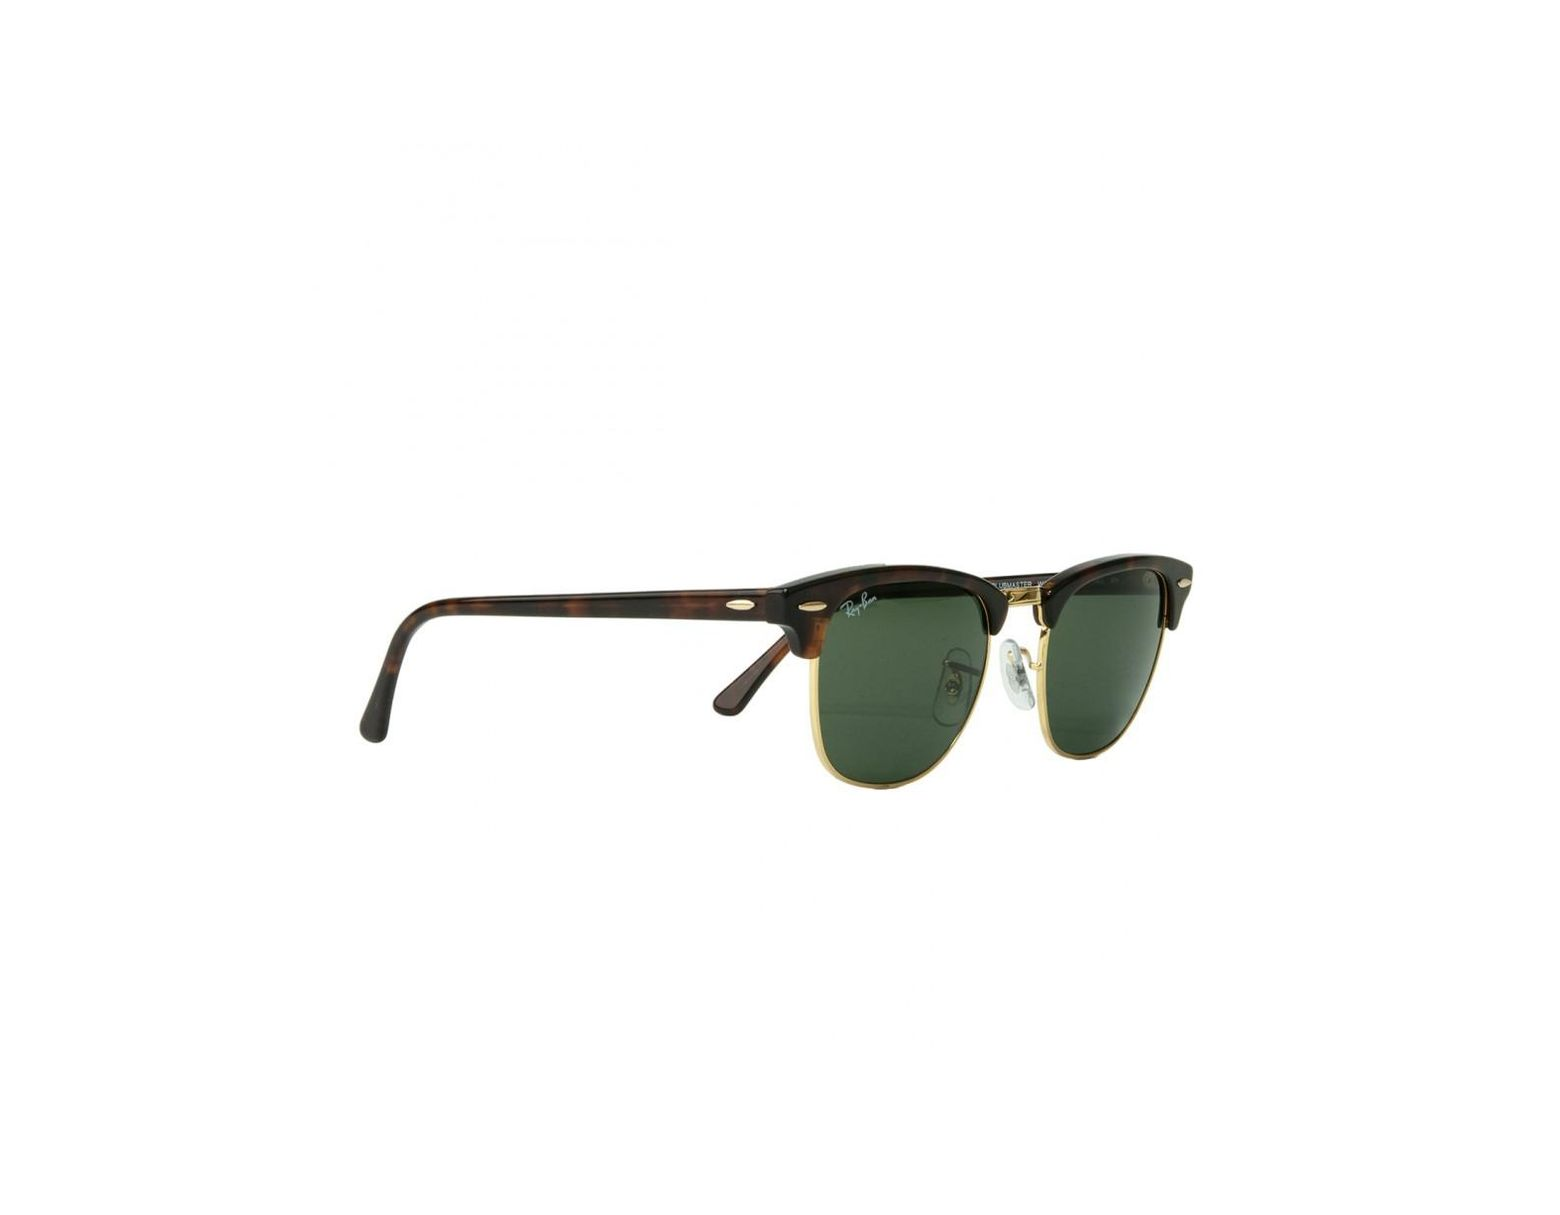 521032e21b Ray-Ban Rb3016 Polarised Clubmaster Sunglasses in Green for Men ...